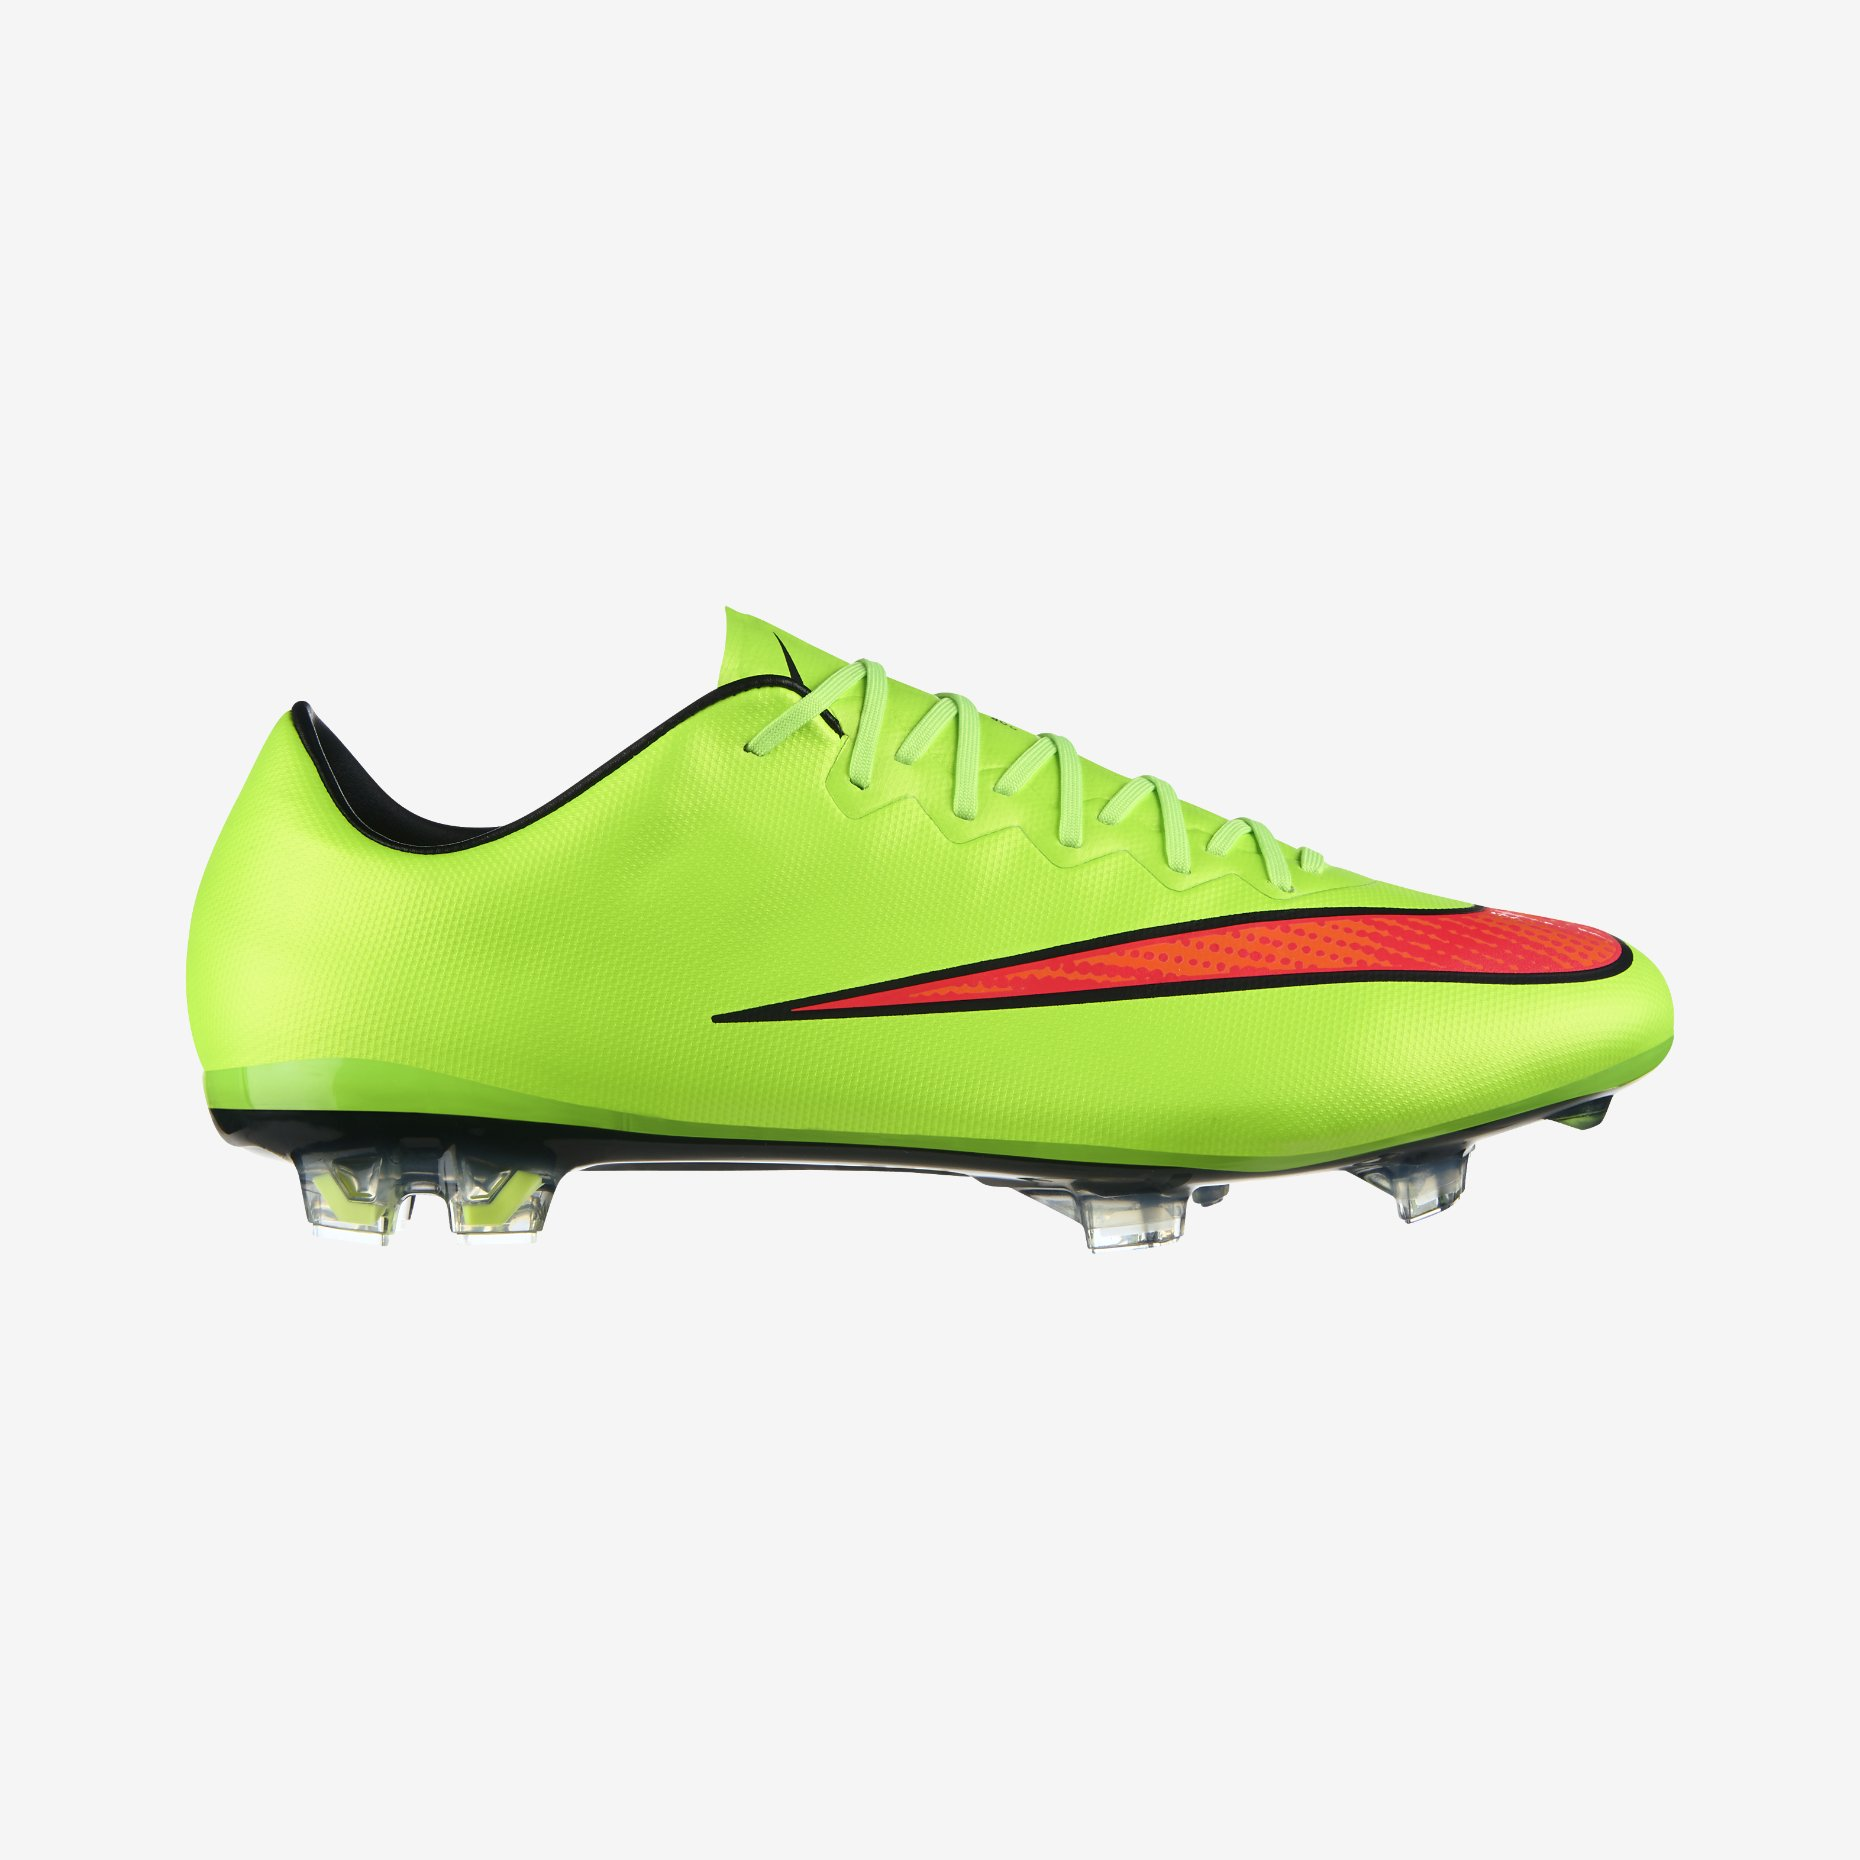 nike mercurial vapor x green release date white. Black Bedroom Furniture Sets. Home Design Ideas